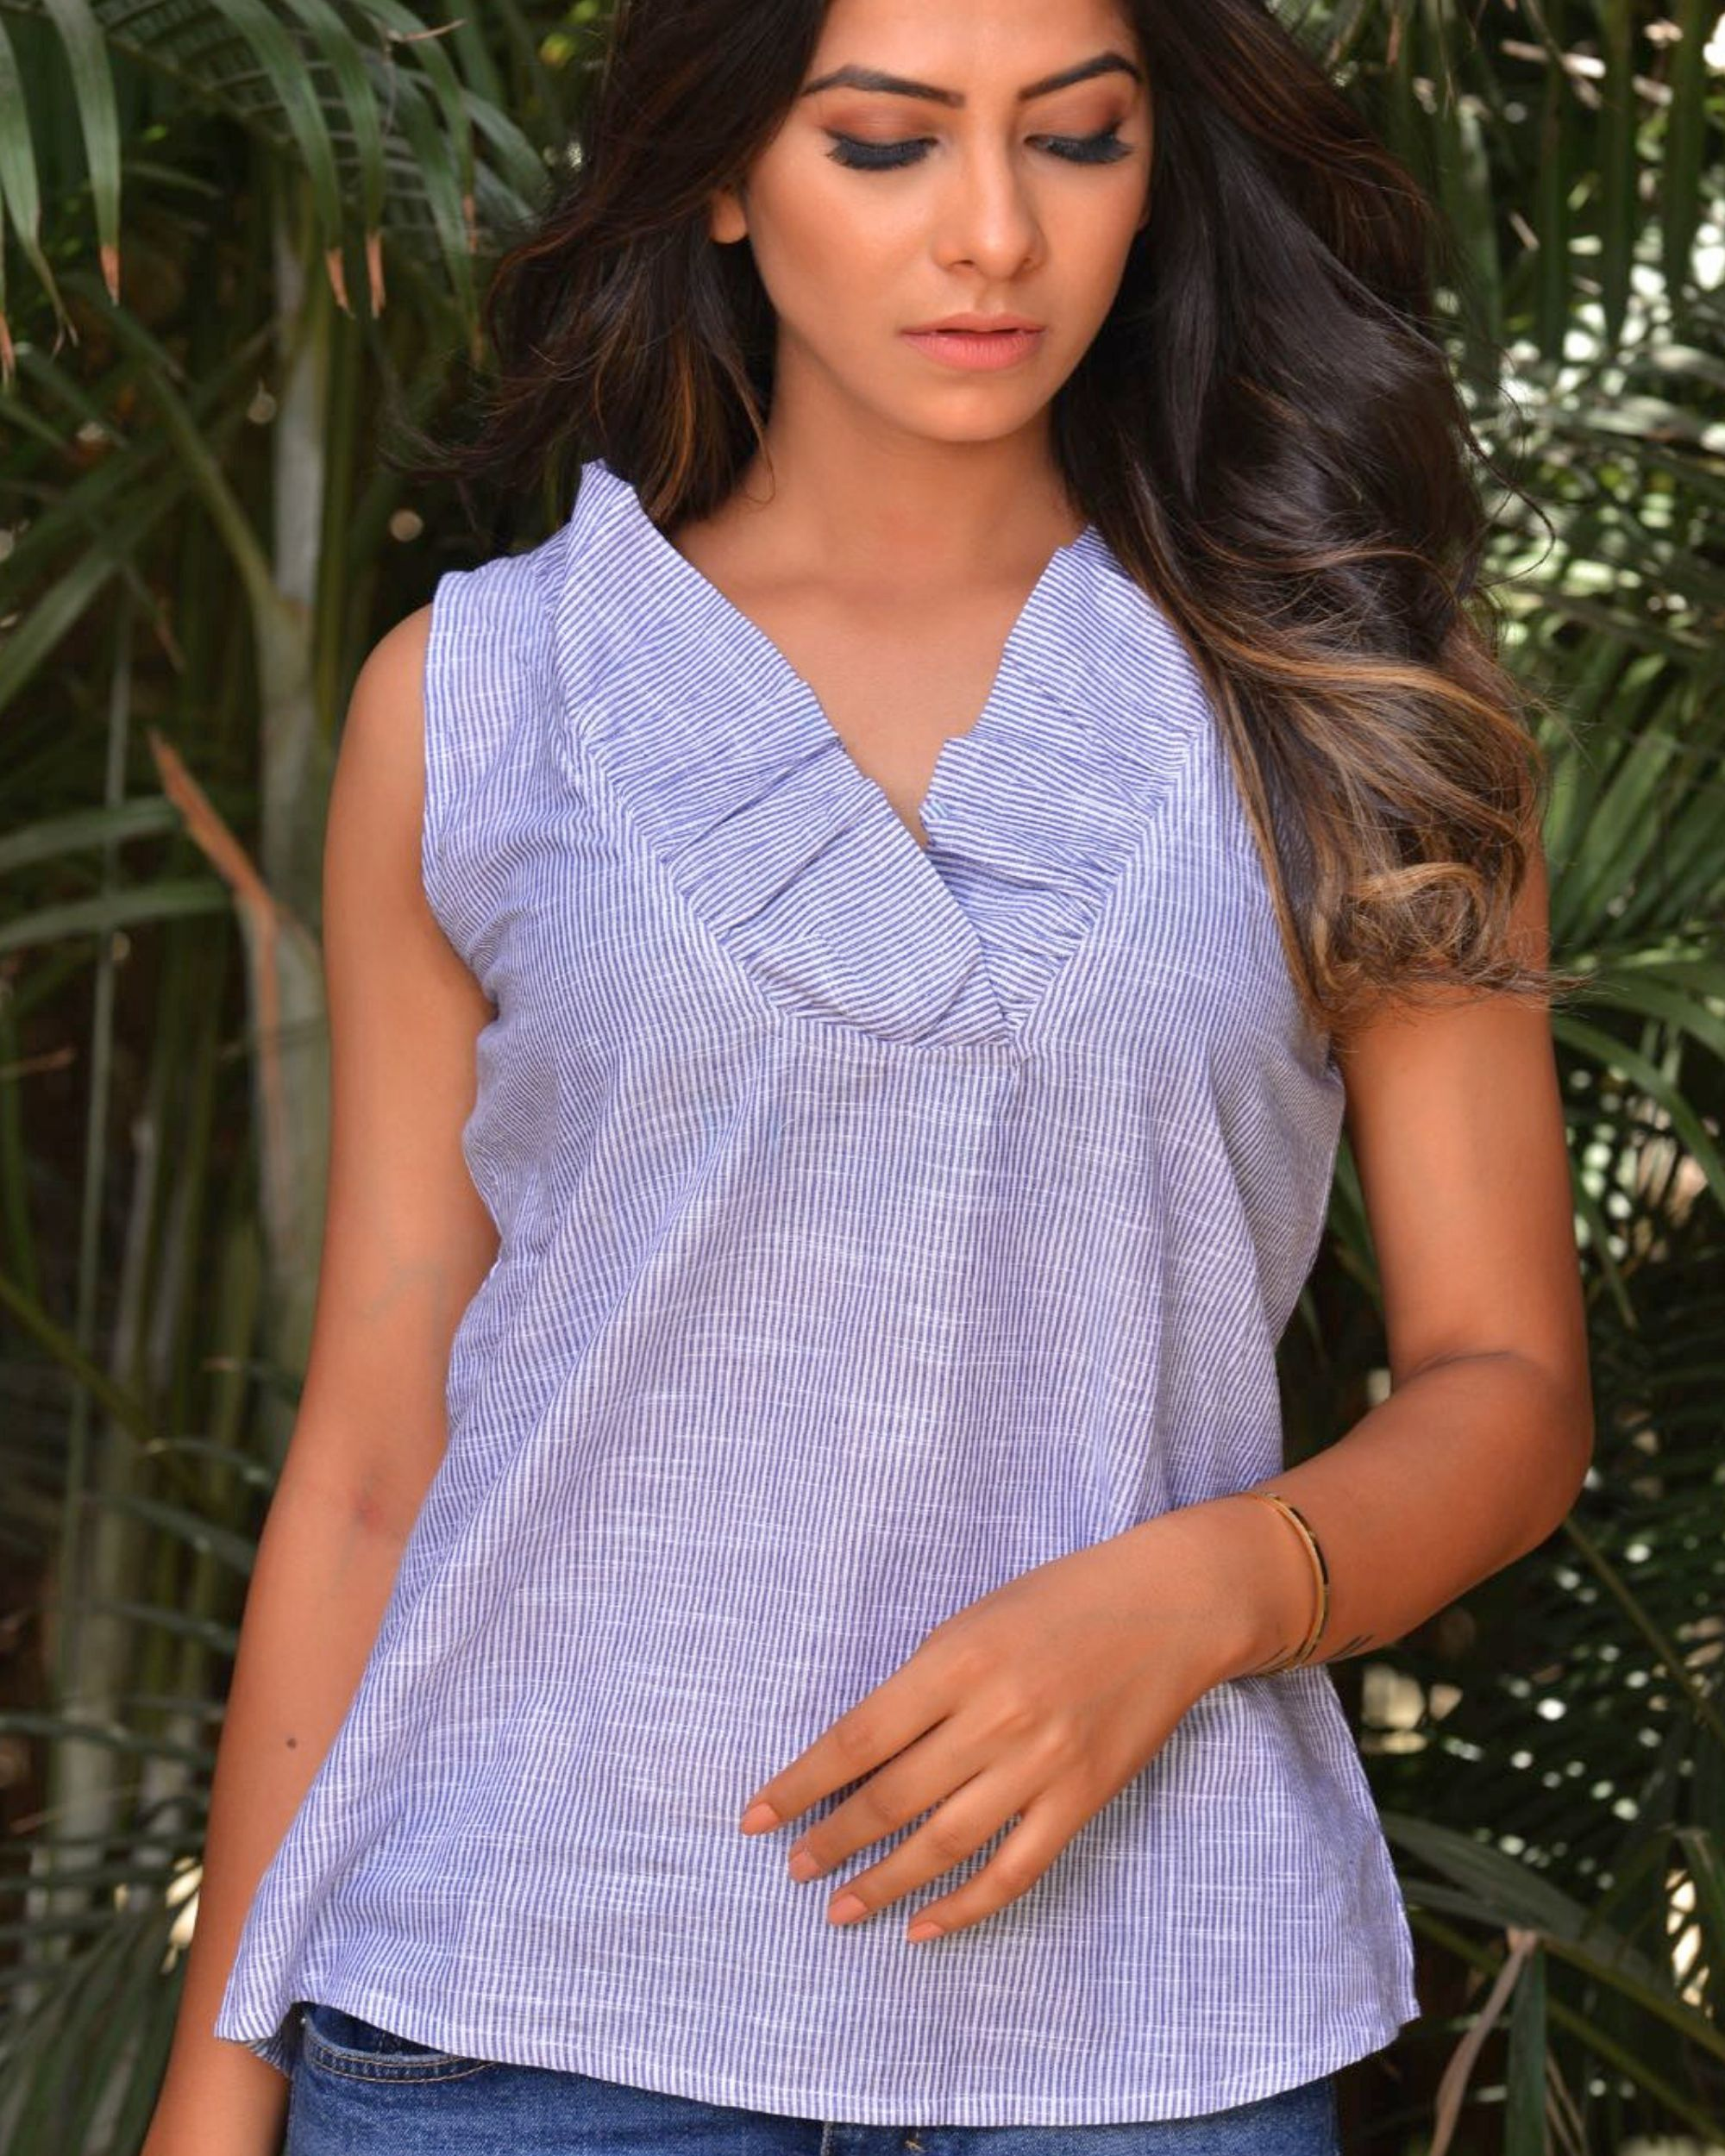 The day to day blue and white frill top